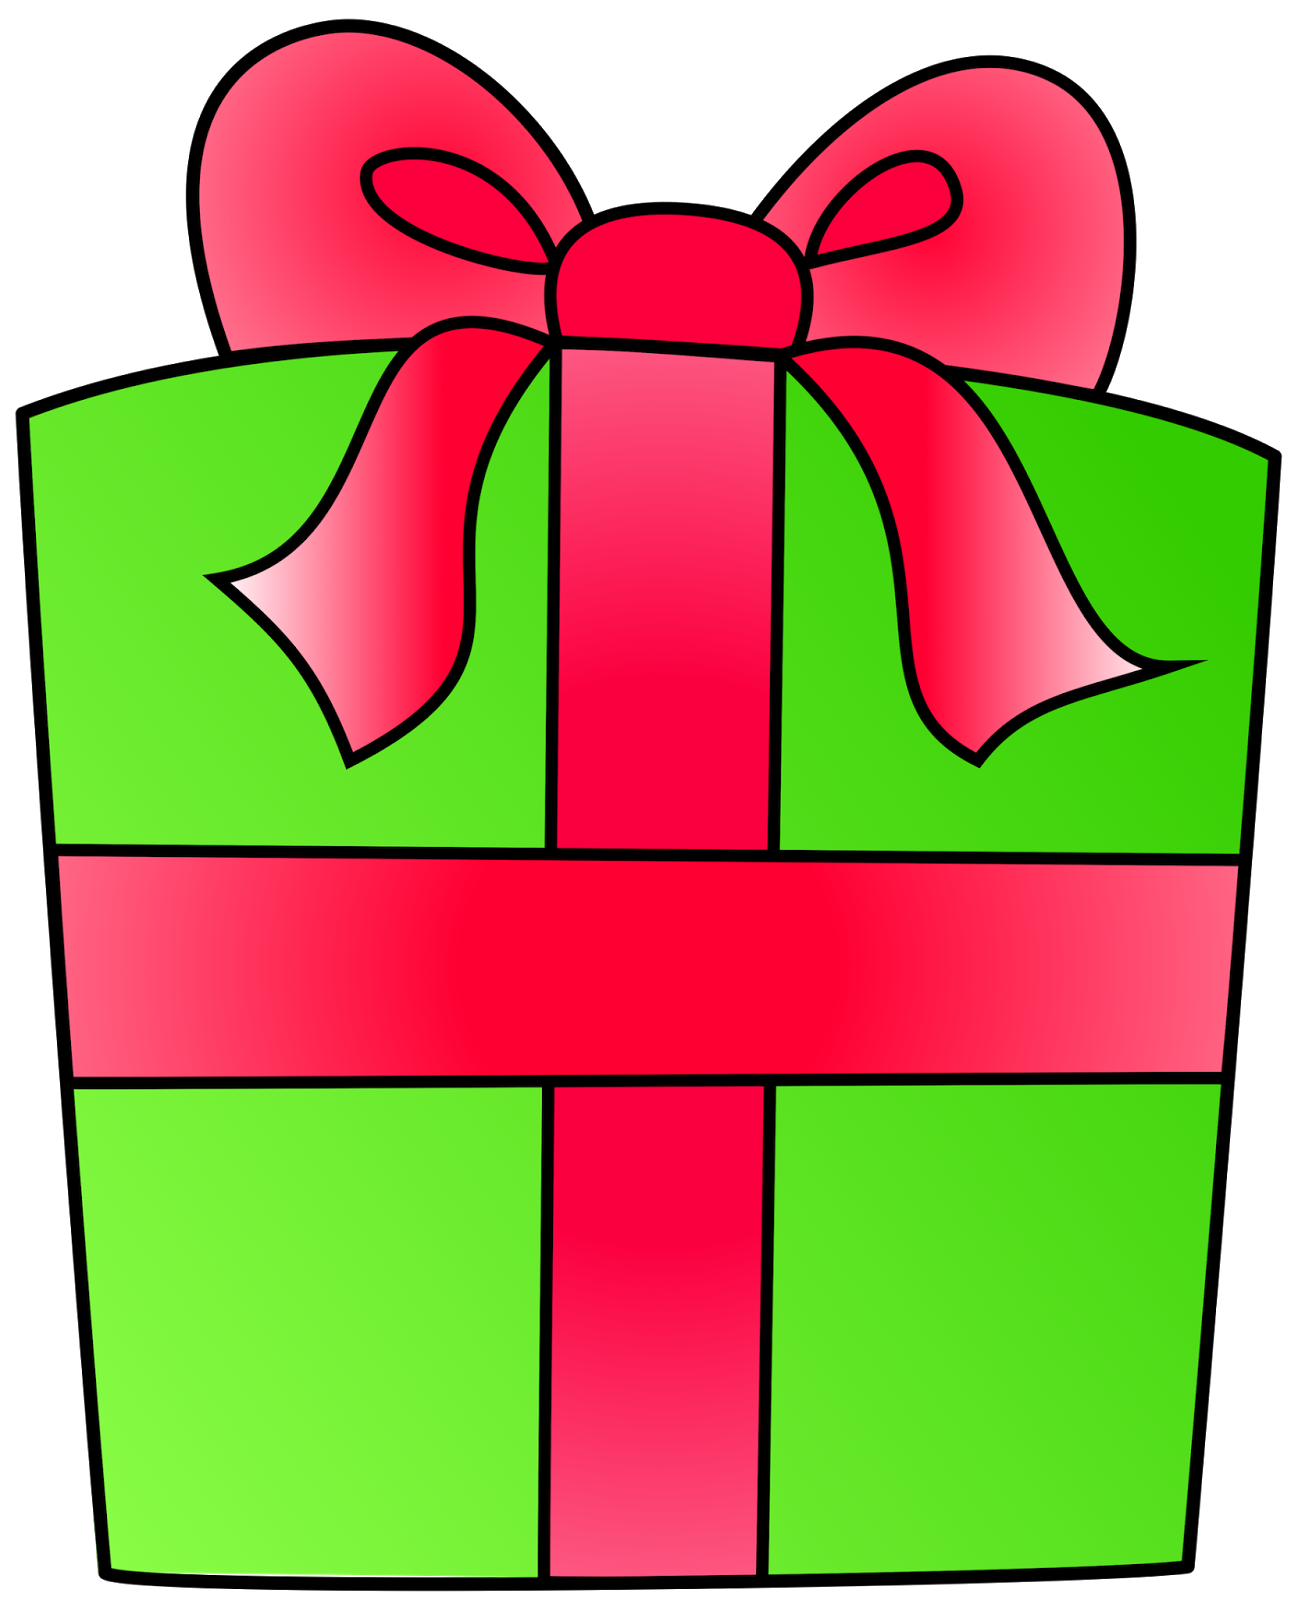 Gift clipart #7, Download drawings